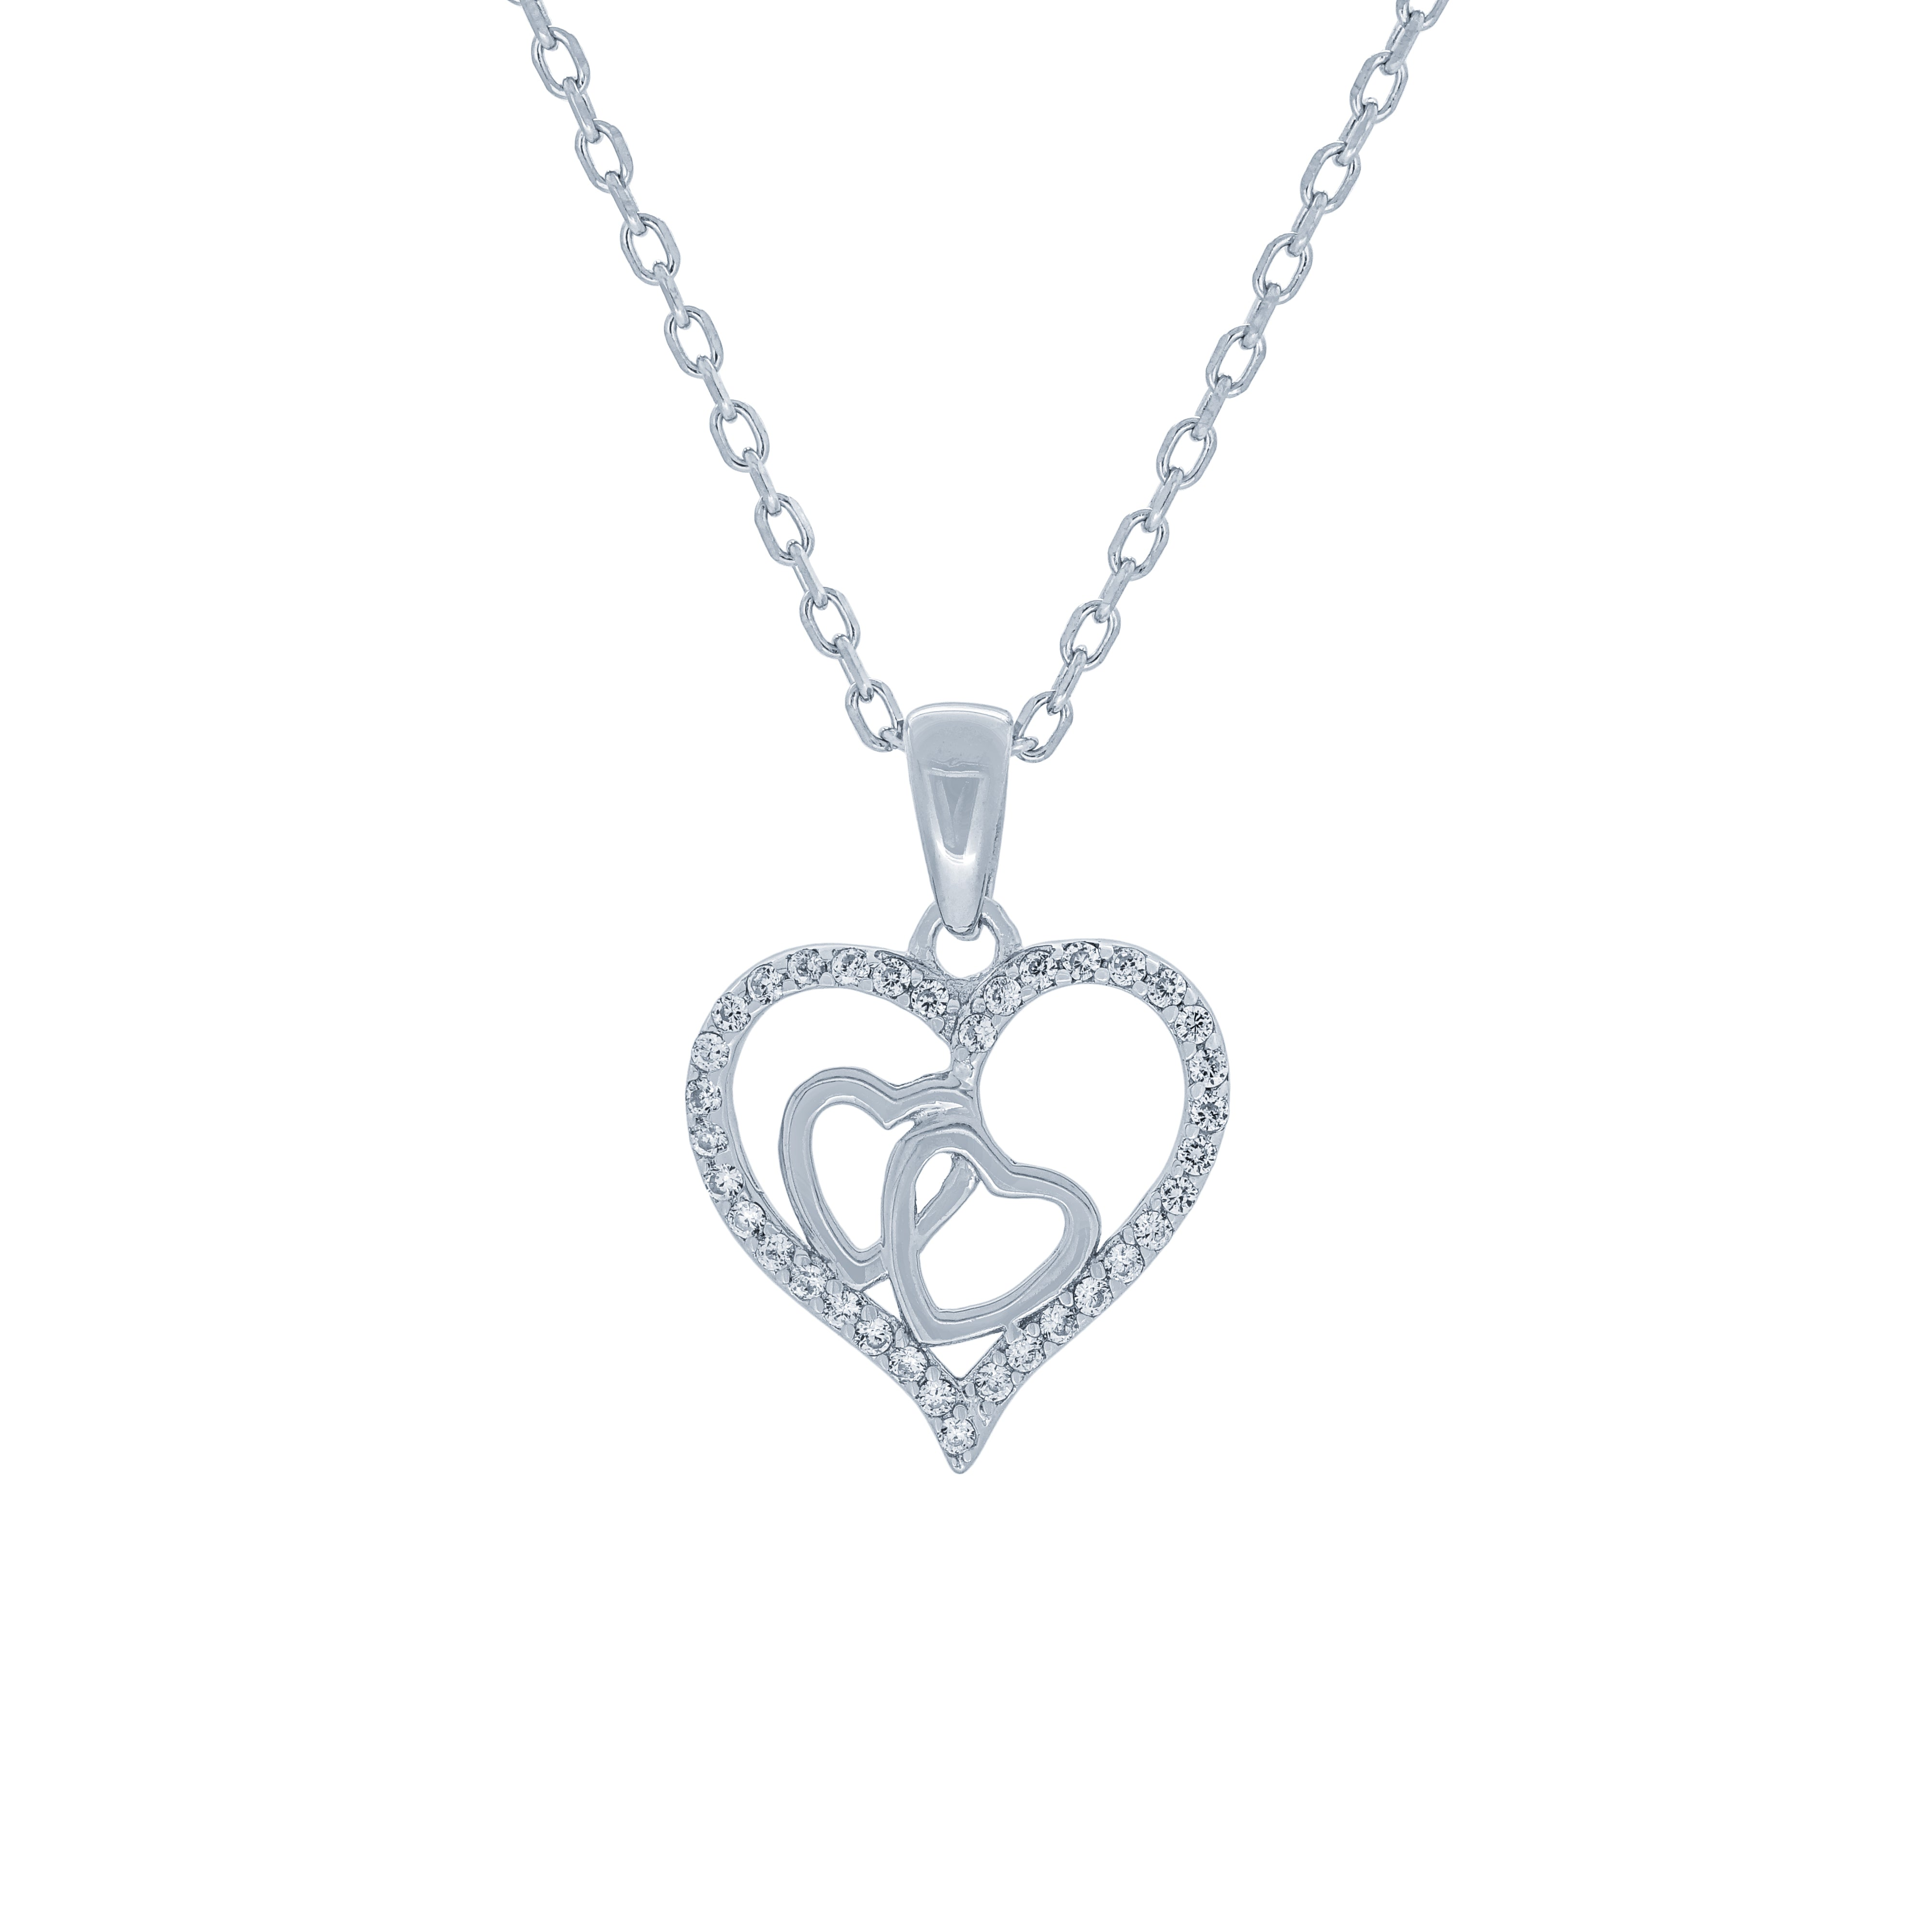 (100144) White Cubic Zirconia Heart Pendant Necklace In Sterling Silver